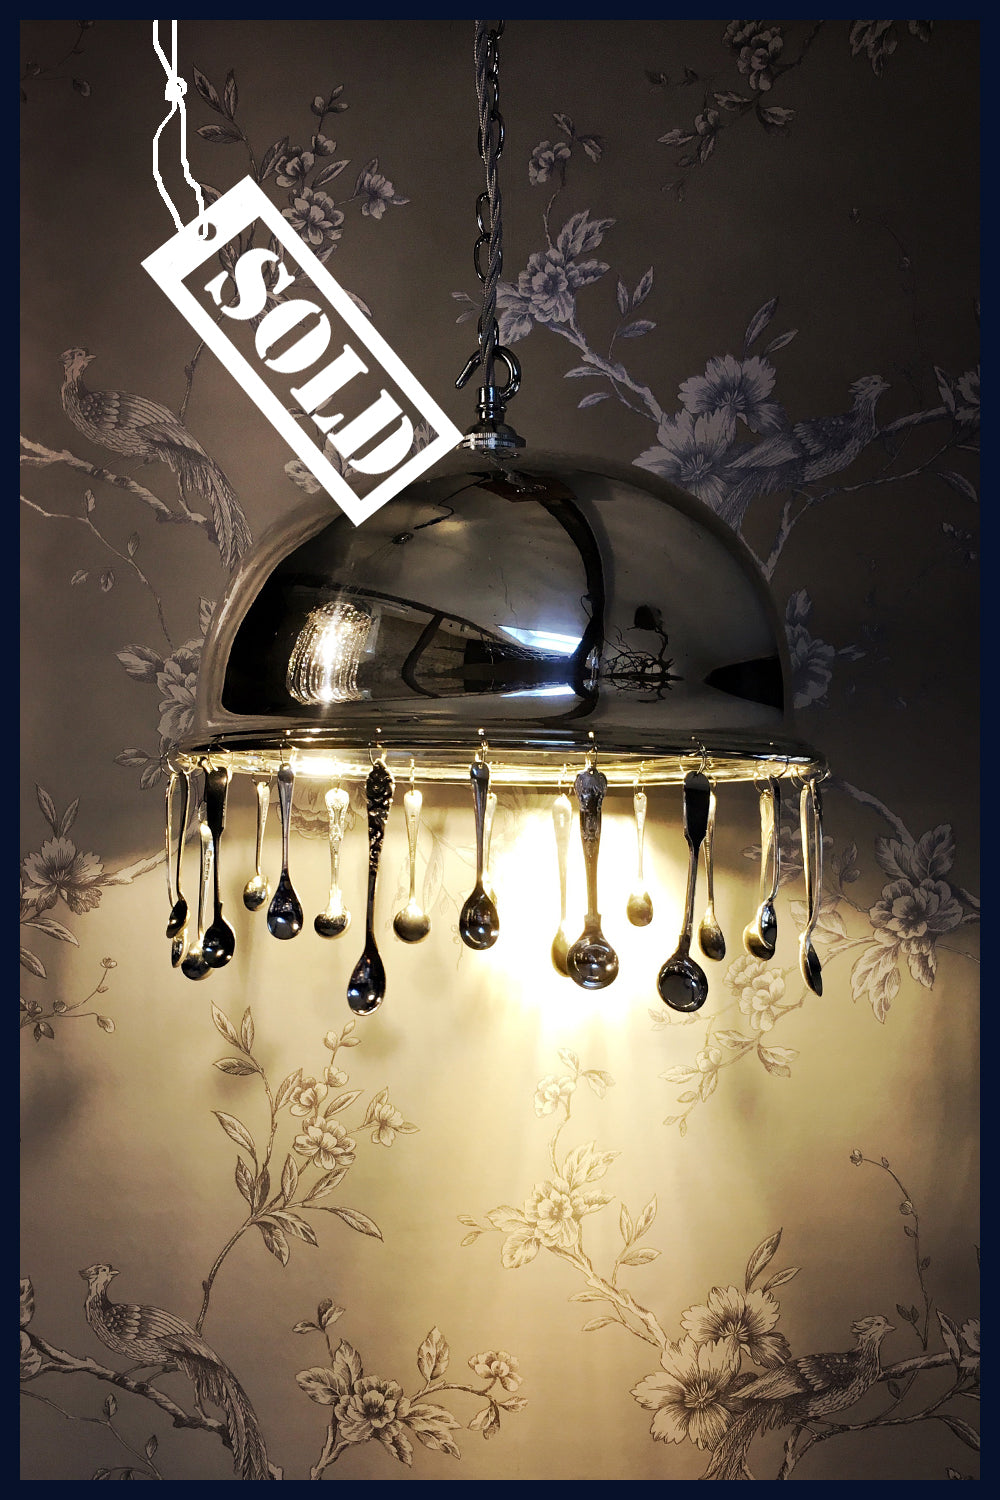 Antique Silver-Plated Food Dome/Cloche Chandelier with Antique Salt & Mustard Spoons - Grace (92)